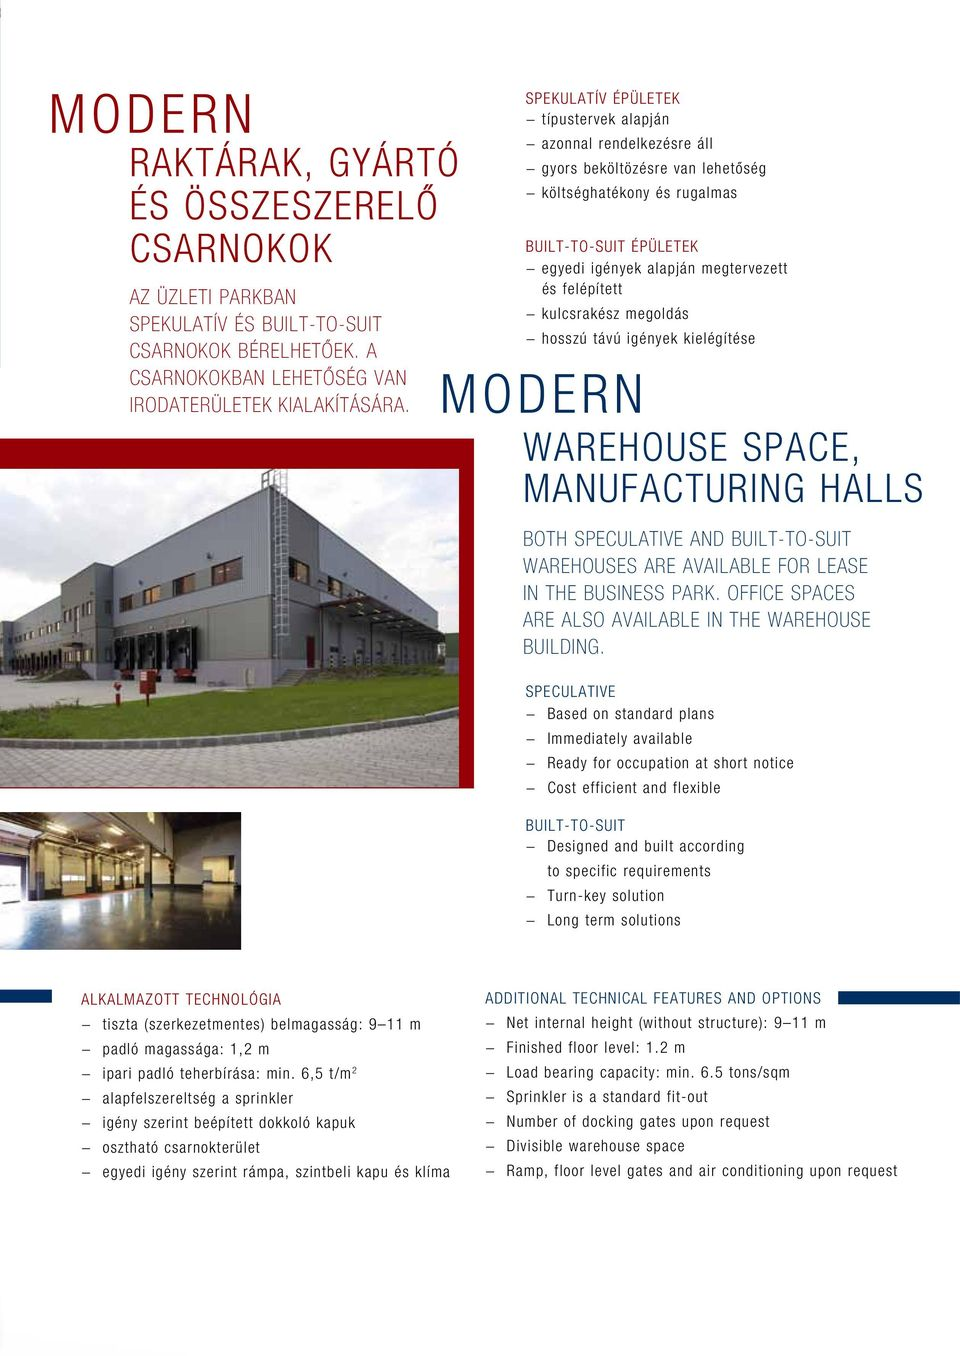 kulcsrakész megoldás hosszú távú igények kielégítése MODERN WAREHOUSE SPACE, MANUFACTURING HALLS Both speculative and built-to-suit warehouses are available for lease in the business park.